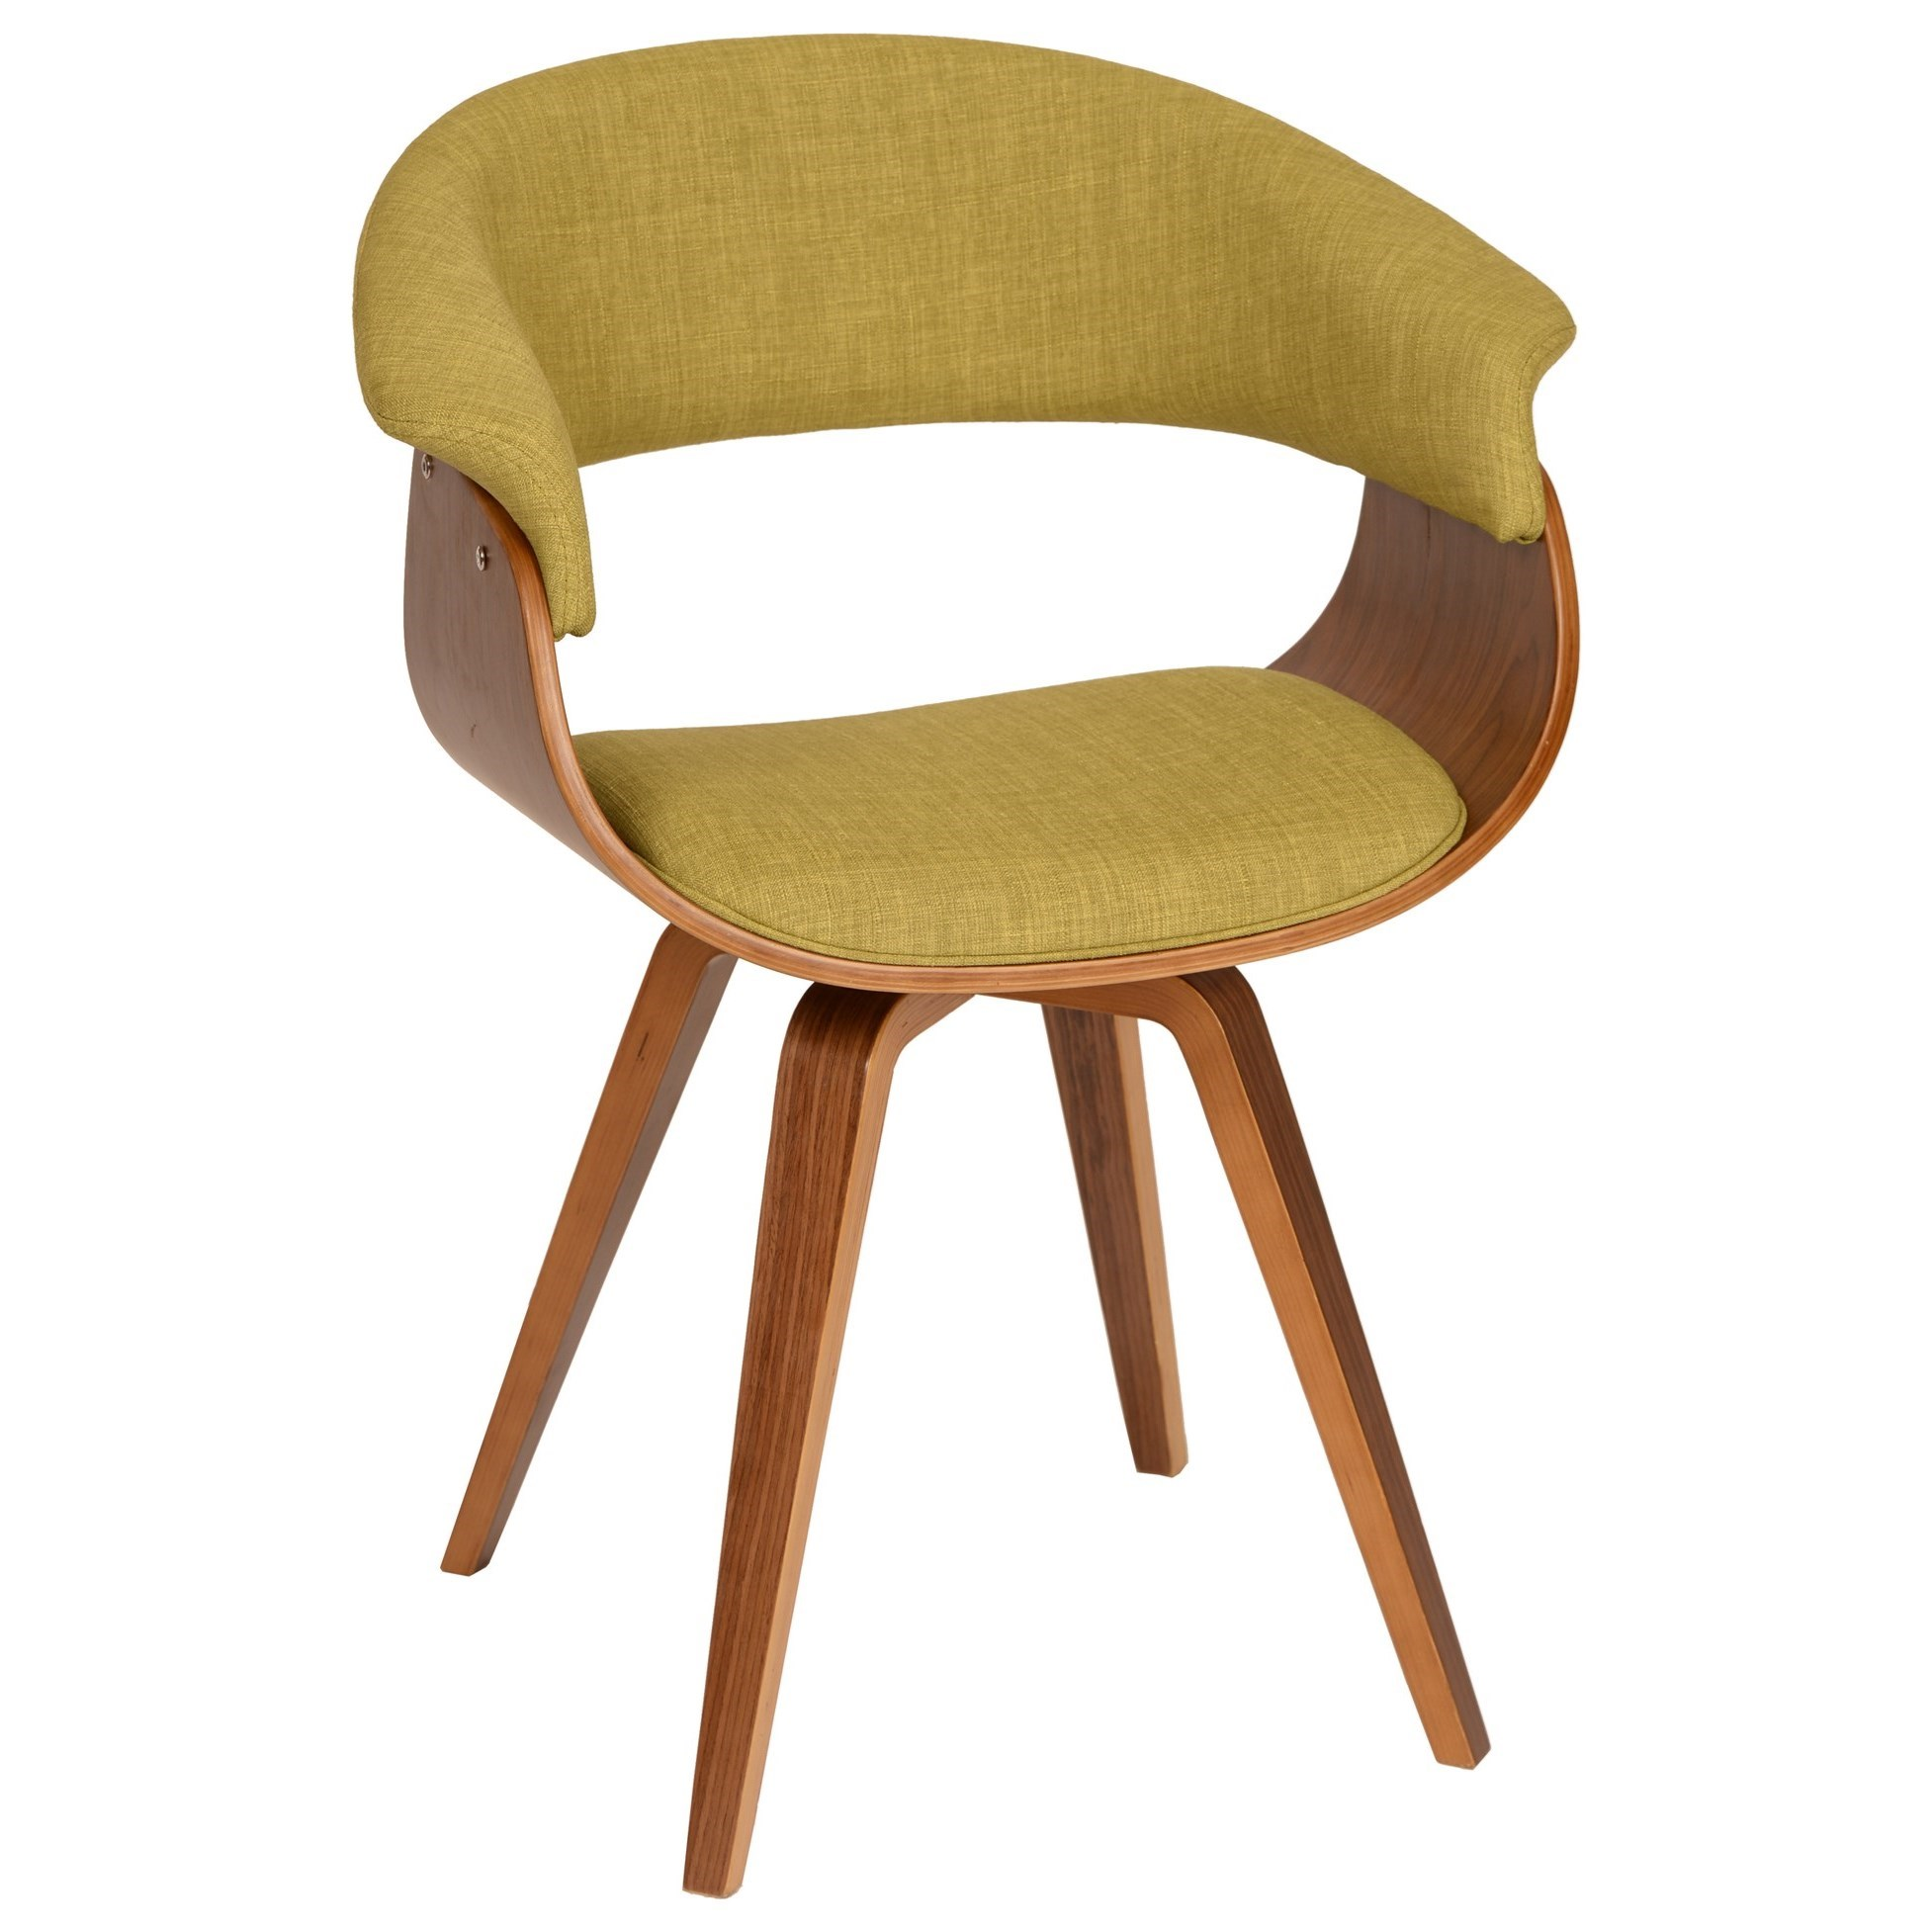 Summer Modern Chair in Green Fabric at Sadler's Home Furnishings